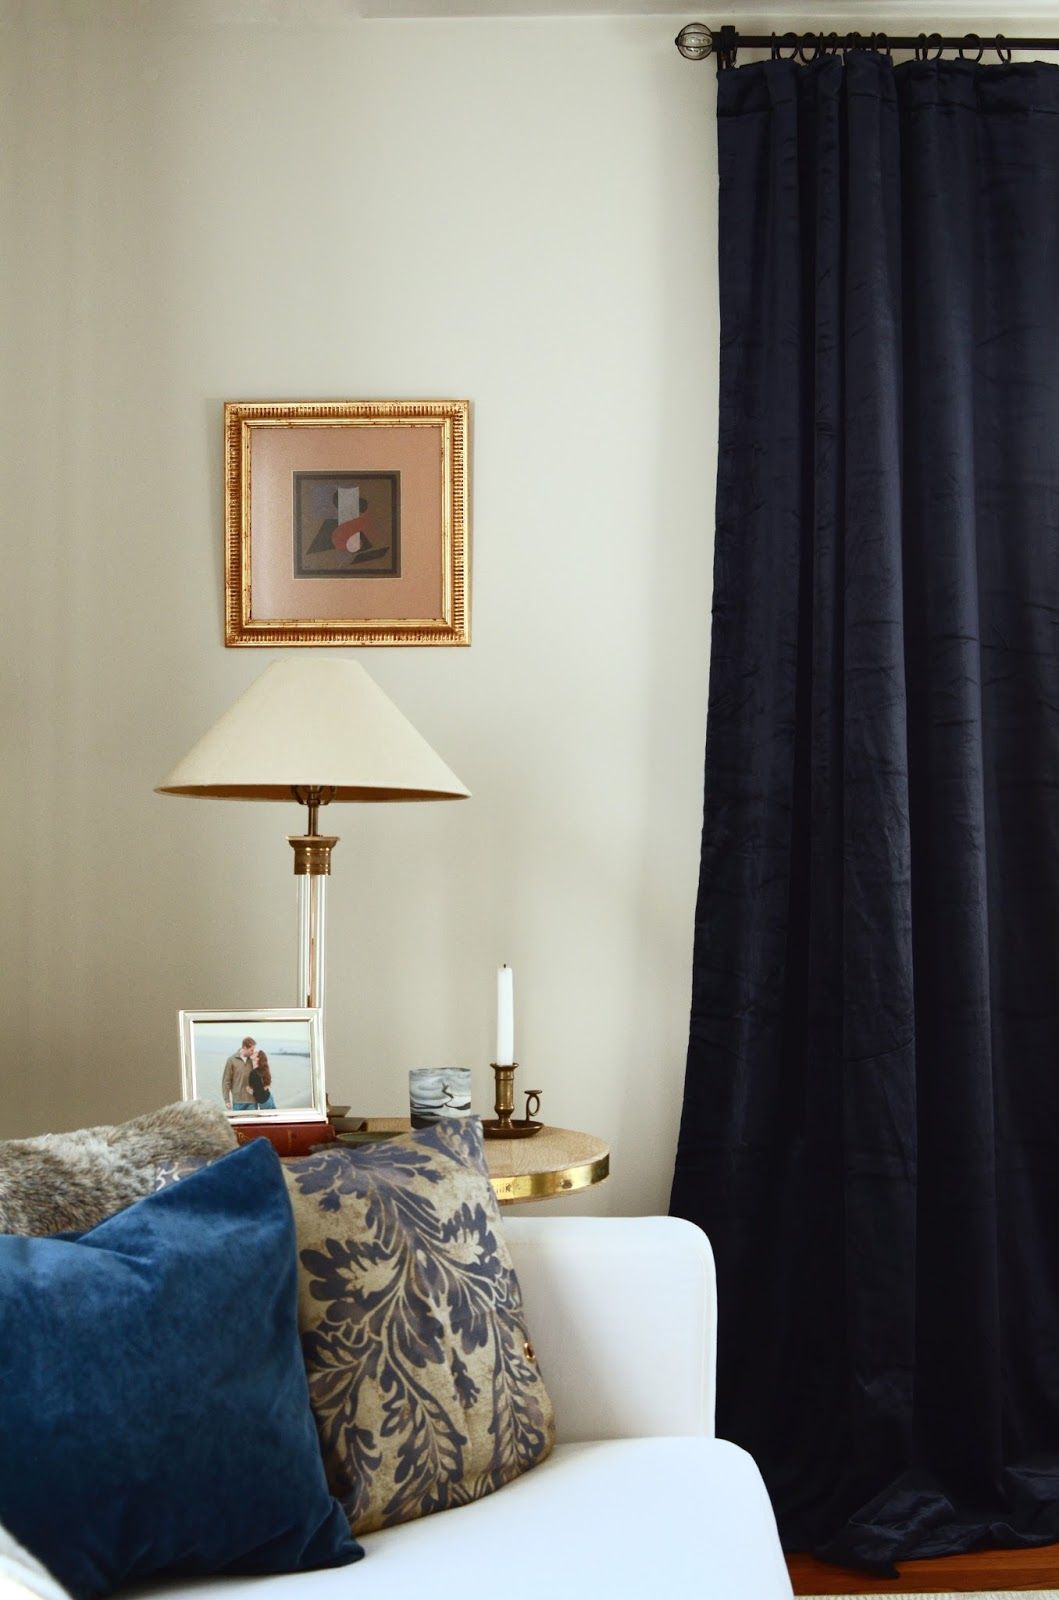 Petrol Navy Blue Velvet Curtains In A Modern Traditional European Living Room